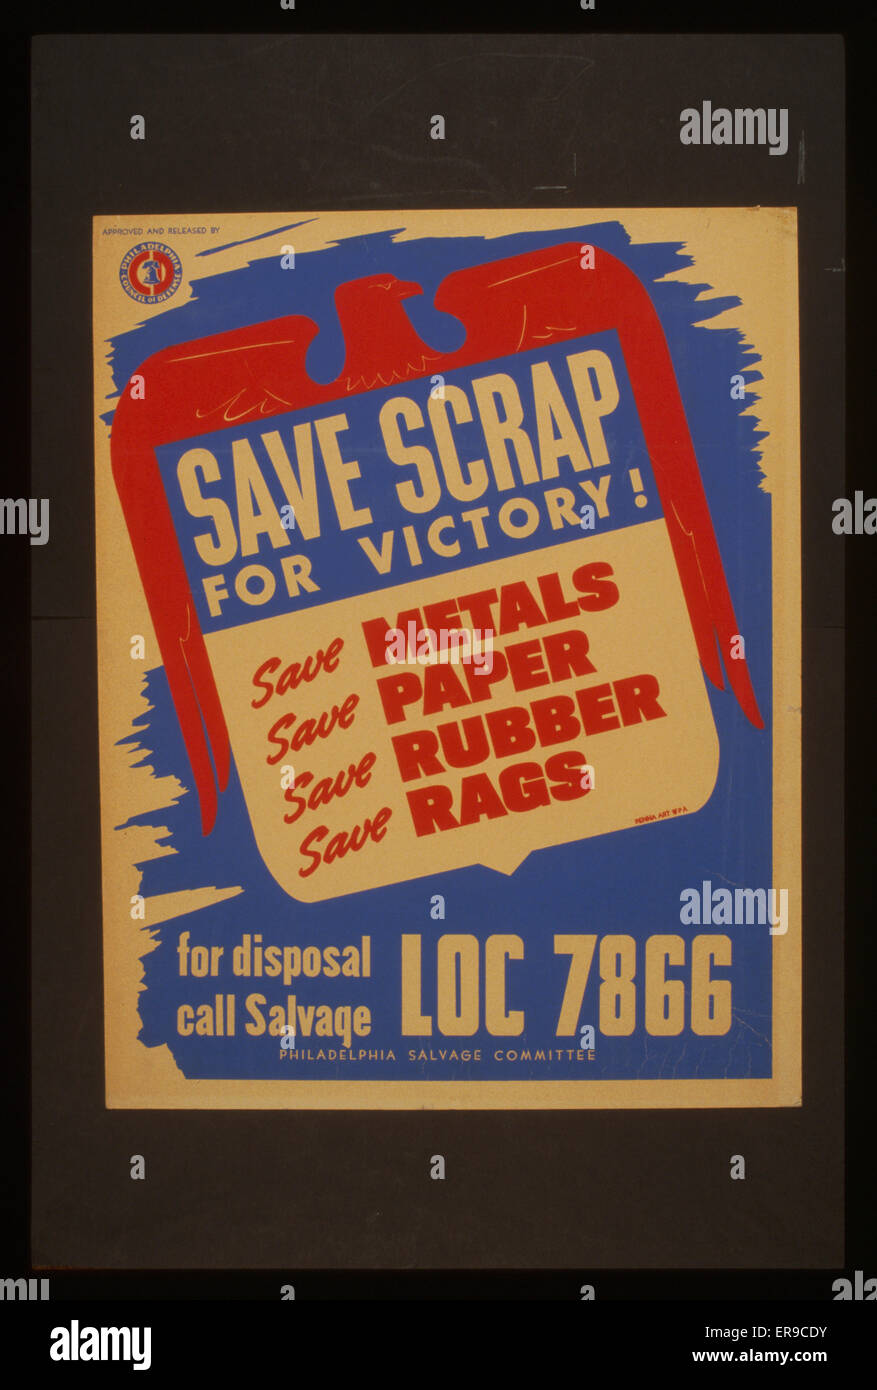 Save scrap for victory! Save metals, save paper, save rubber, save rags. Poster for the Philadelphia Salvage Committee - Stock Image